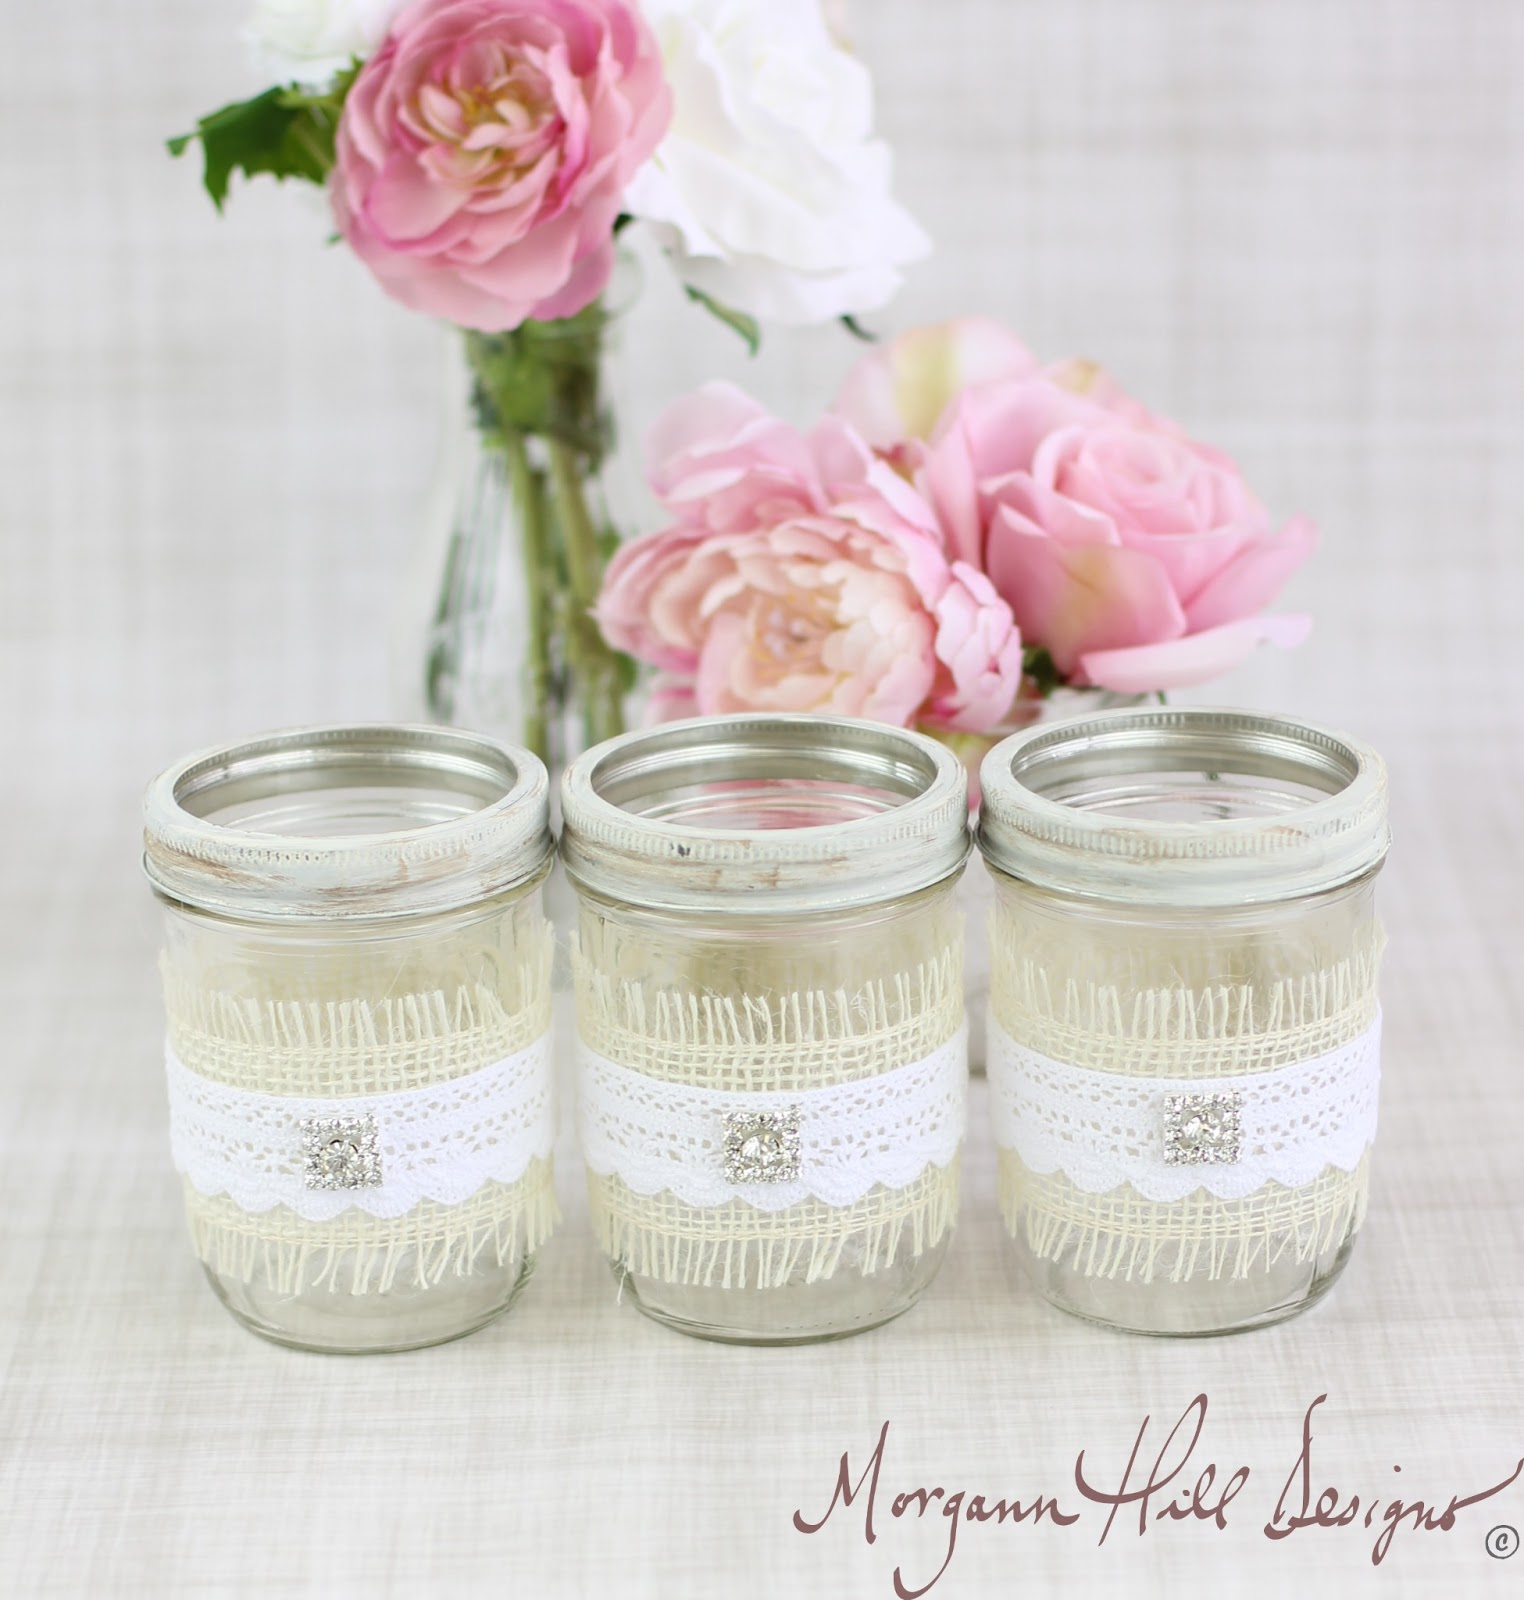 Morgann Hill Designs: Mason Jar Wedding Centerpieces Vases with ...